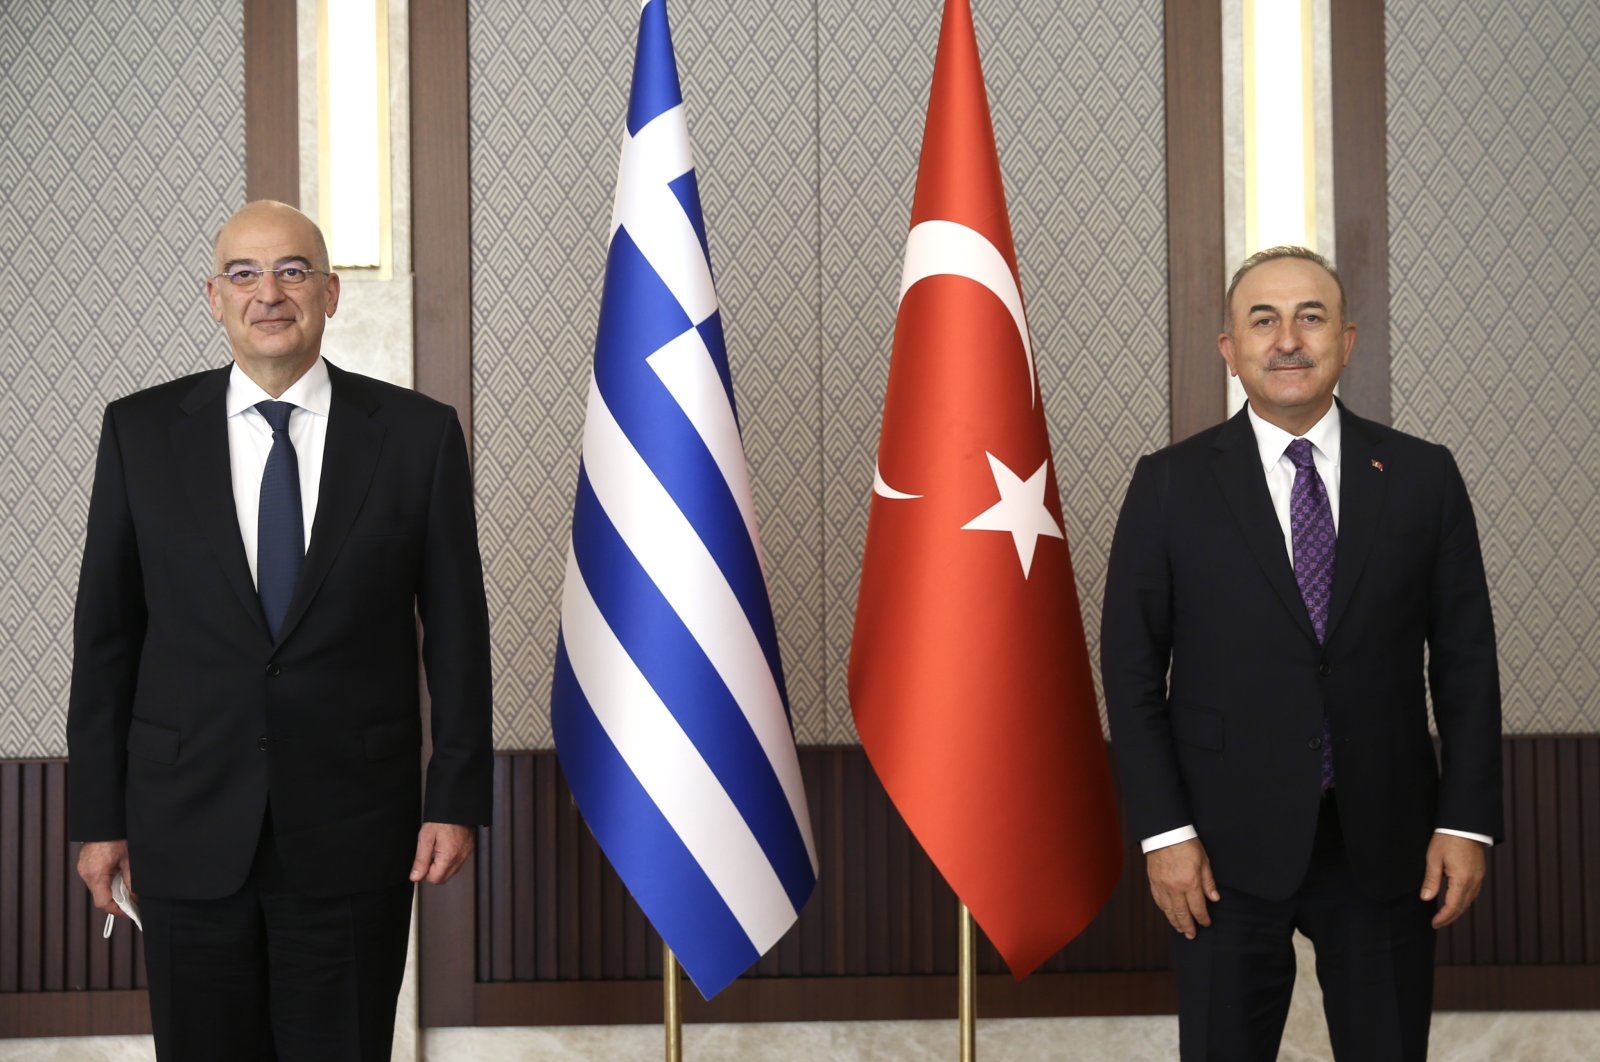 Greek Foreign Minister Nikos Dendias (L) and Turkish Foreign Minister Mevlüt Çavuşoğlu pose for a photo prior to their meeting in Ankara, Turkey, April 15, 2021. (Photo made available by the Turkish Foreign Ministry's press office/EPA Photo)